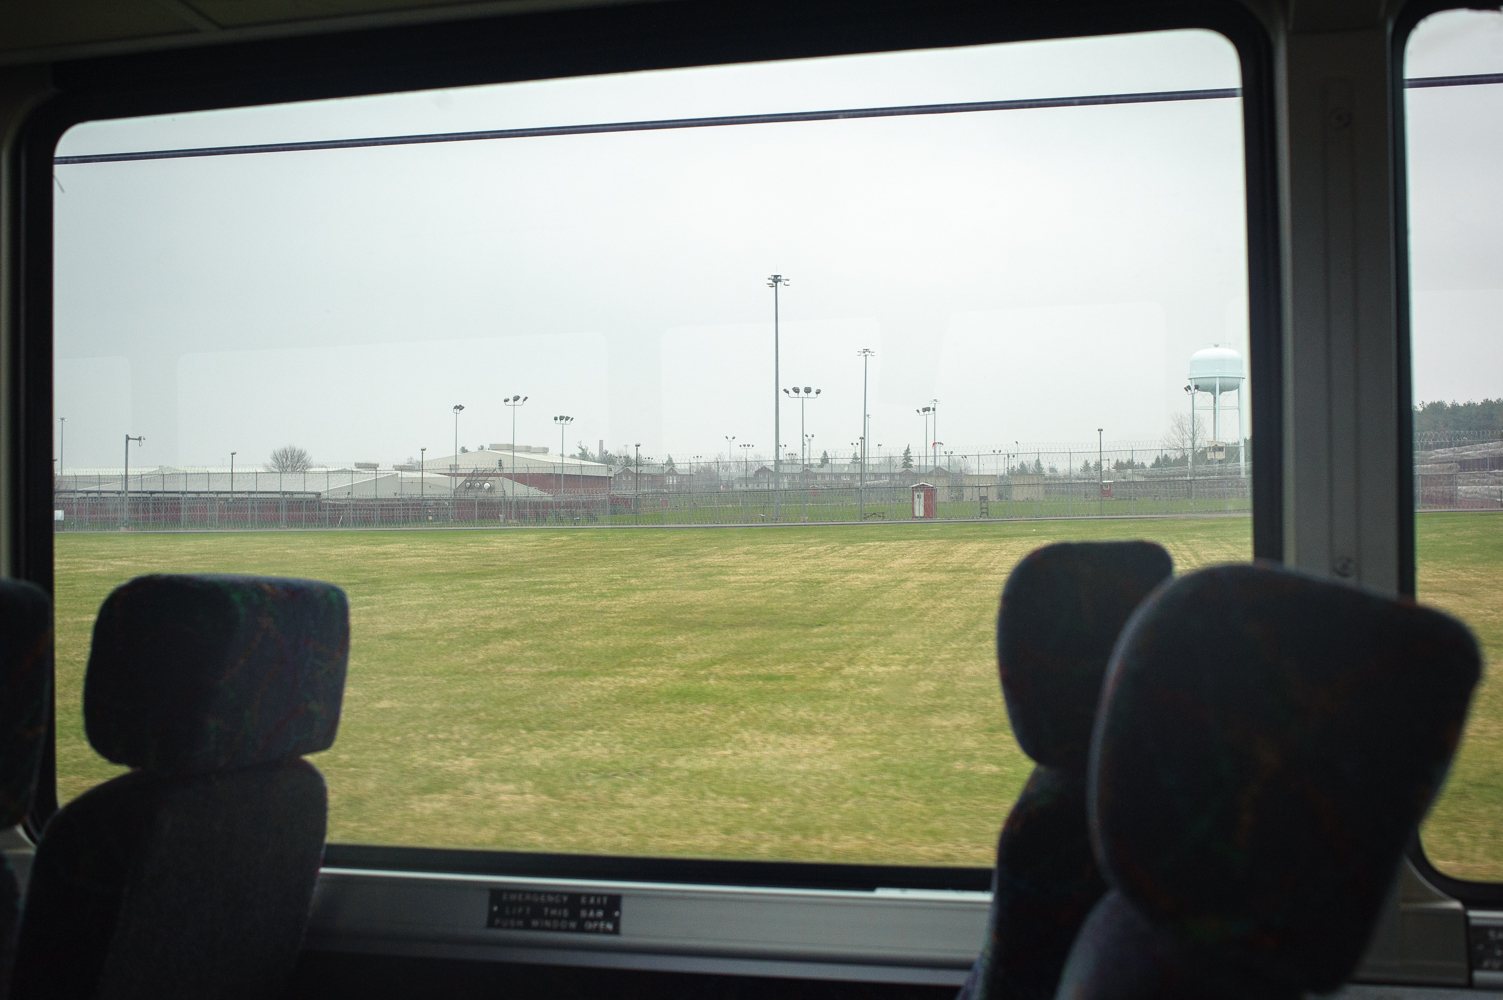 The view of Orleans Correctional Facility from the bus. Like many New York State prisons, it is hundreds of miles from New York City, where many of its prisoners come from.  Every Friday and Saturday night hundreds of New Yorkers, mostly women, many with children, undertake 24-hour trips and get on private buses and mini vans to drive all night in order to spend a few hours the next day with their husbands, brothers, mothers and fathers, who have been placed in prisons hundreds of miles from the city. April 26, 2014.